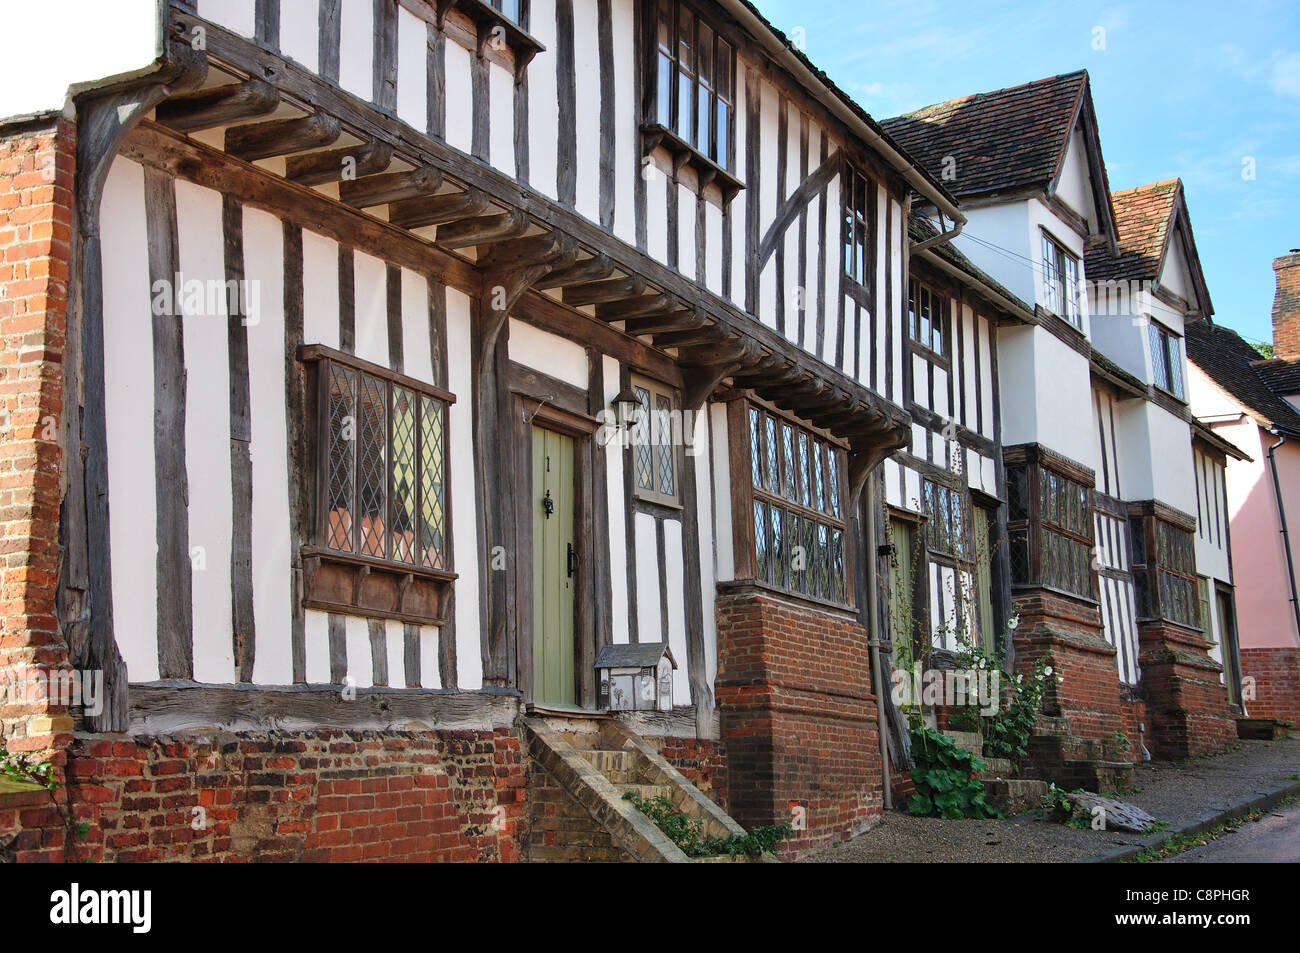 Period building on The Street, Kersey, Suffolk, England, United Kingdom - Stock Image